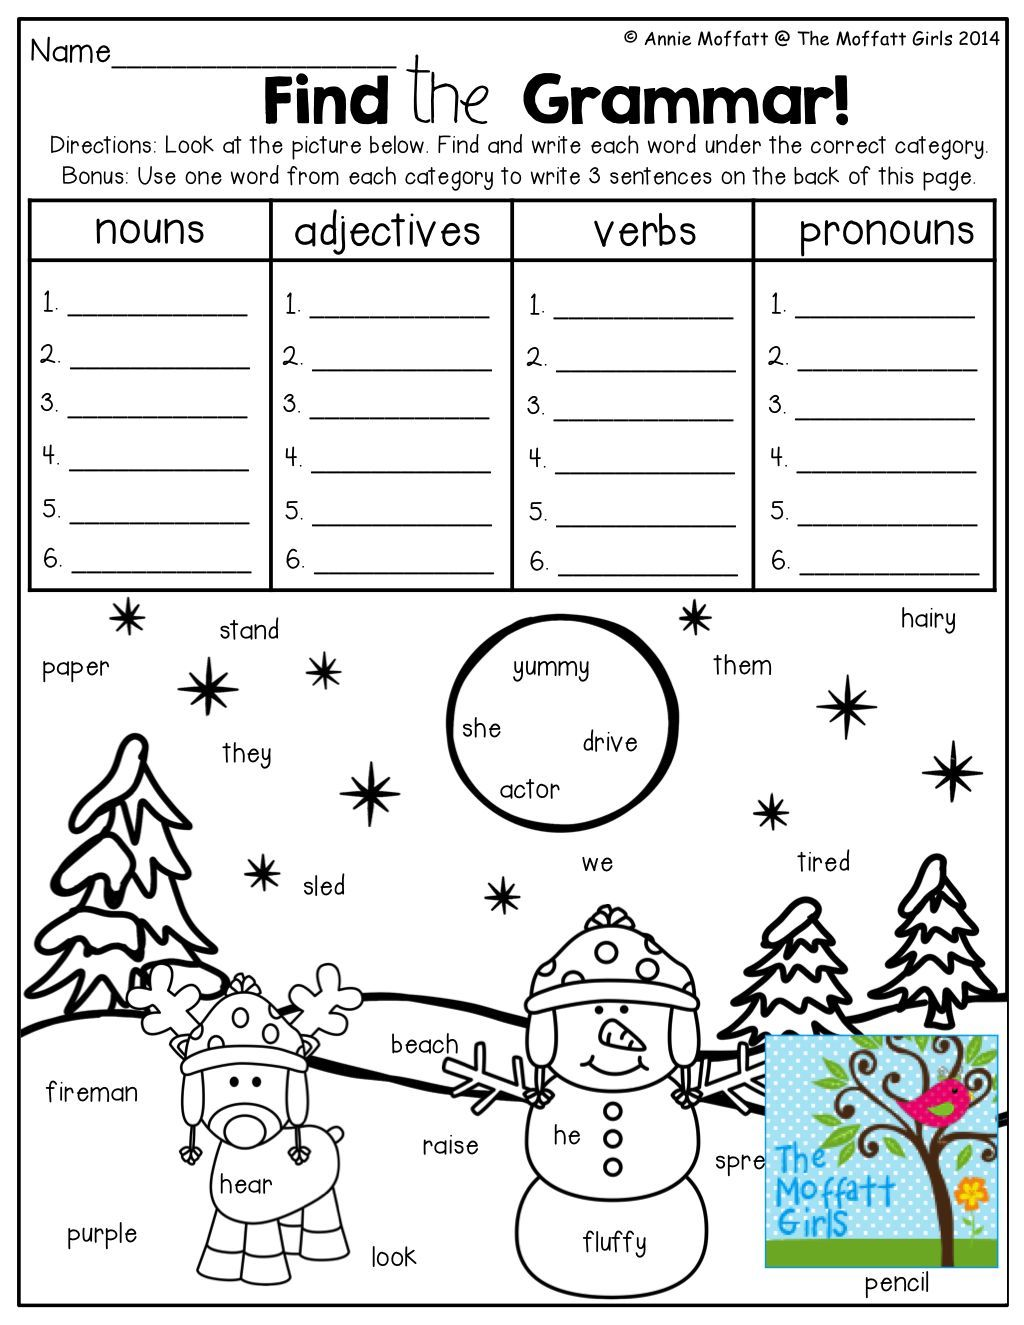 Worksheets Fun Grammar Worksheets baby sign language 21 words and signs to know grammar pinterest find the search write nouns adjectives verbs pronouns tons of fun effective printables